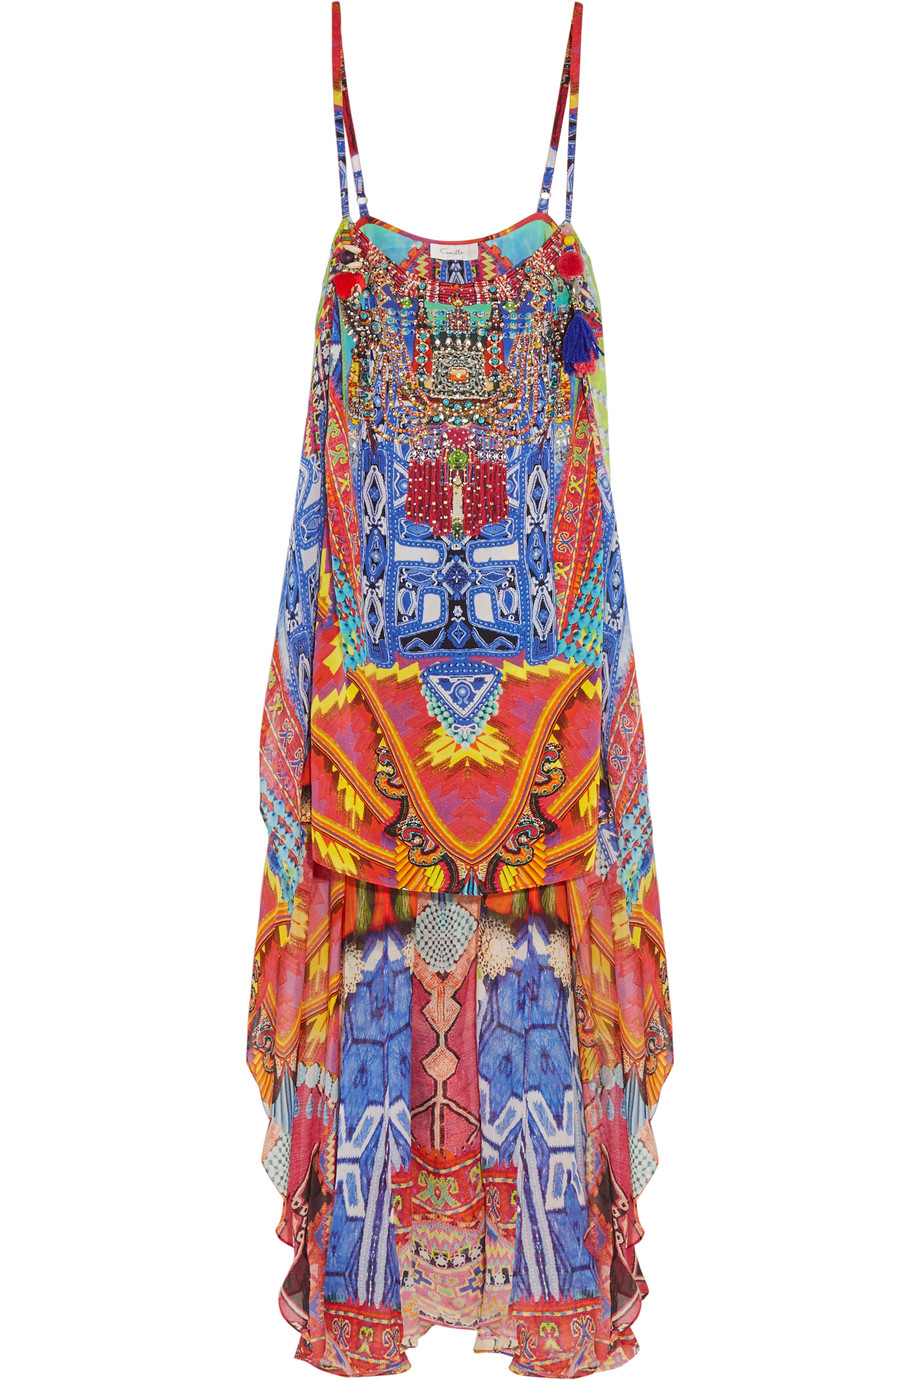 Freedom of Play Embellished Printed Silk Dress, Cobalt Blue/Red, Women's, Size: 2